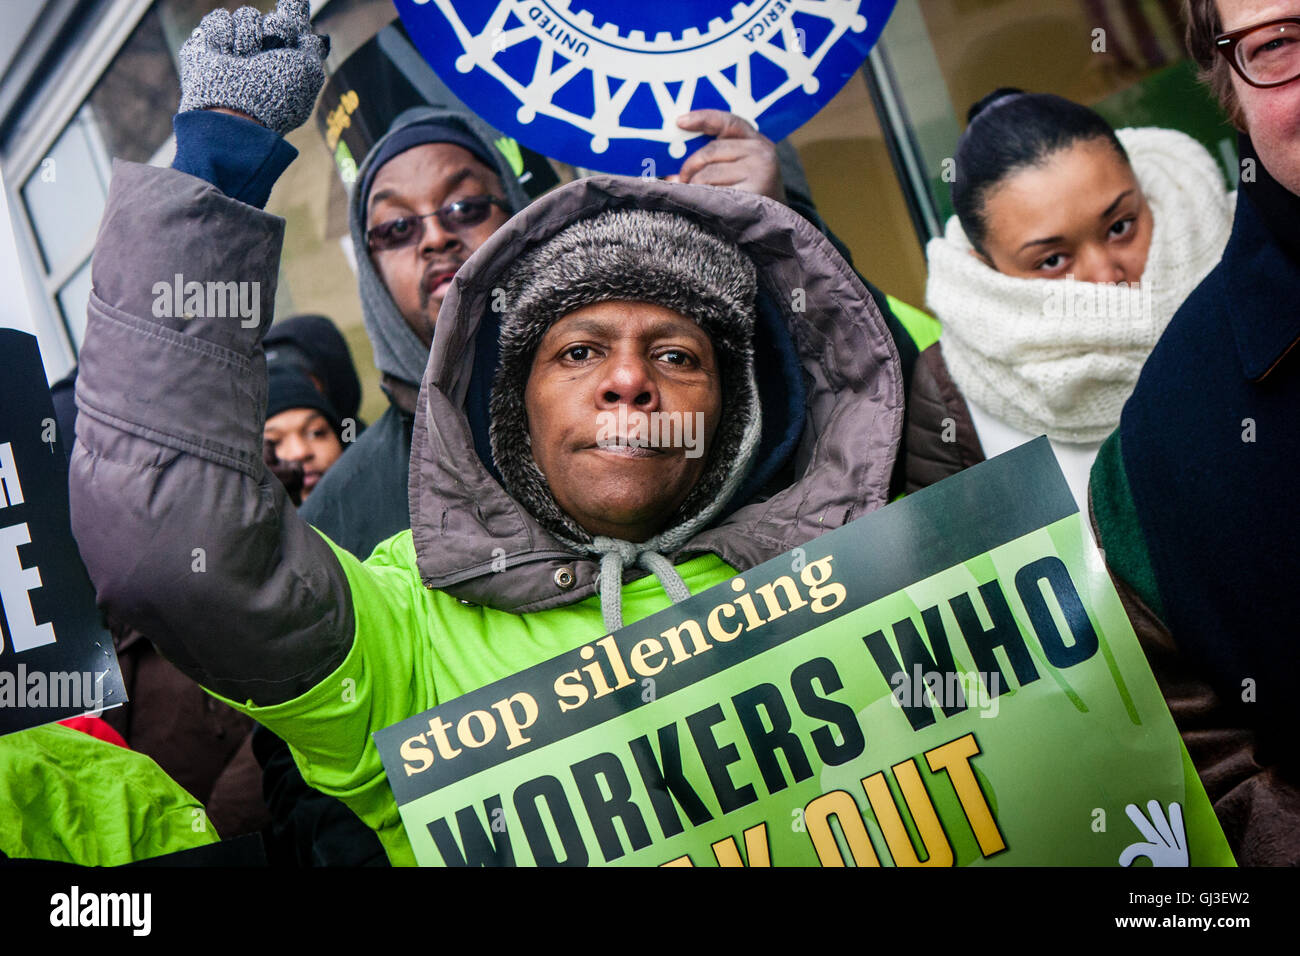 Chicago, Illinois - November 28, 2014: Striking Walmart workers and supporters protest outside a store on Black - Stock Image